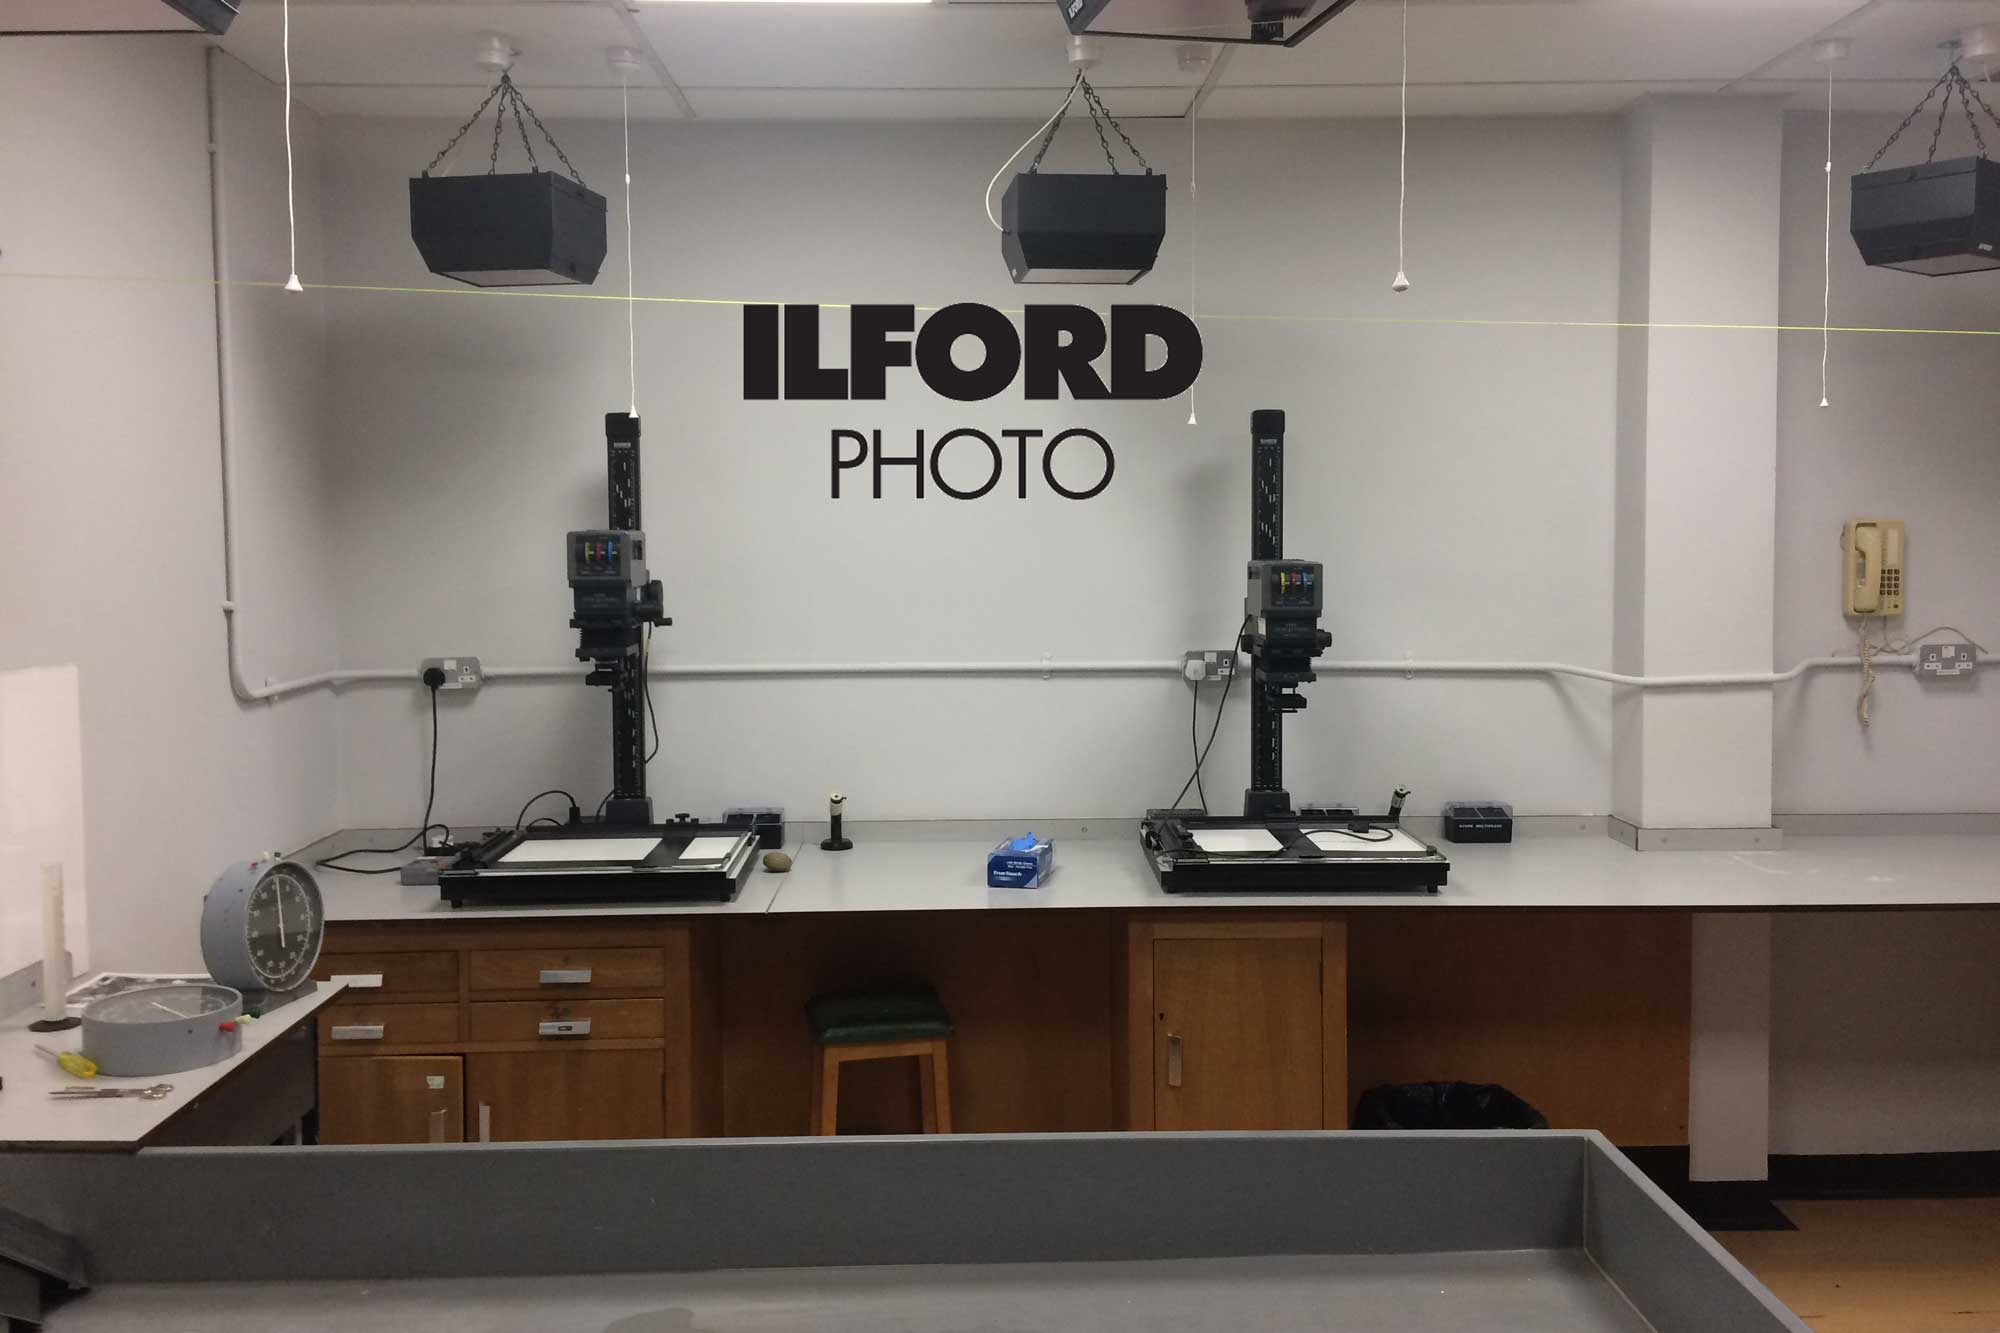 Ilford Photo darkroom